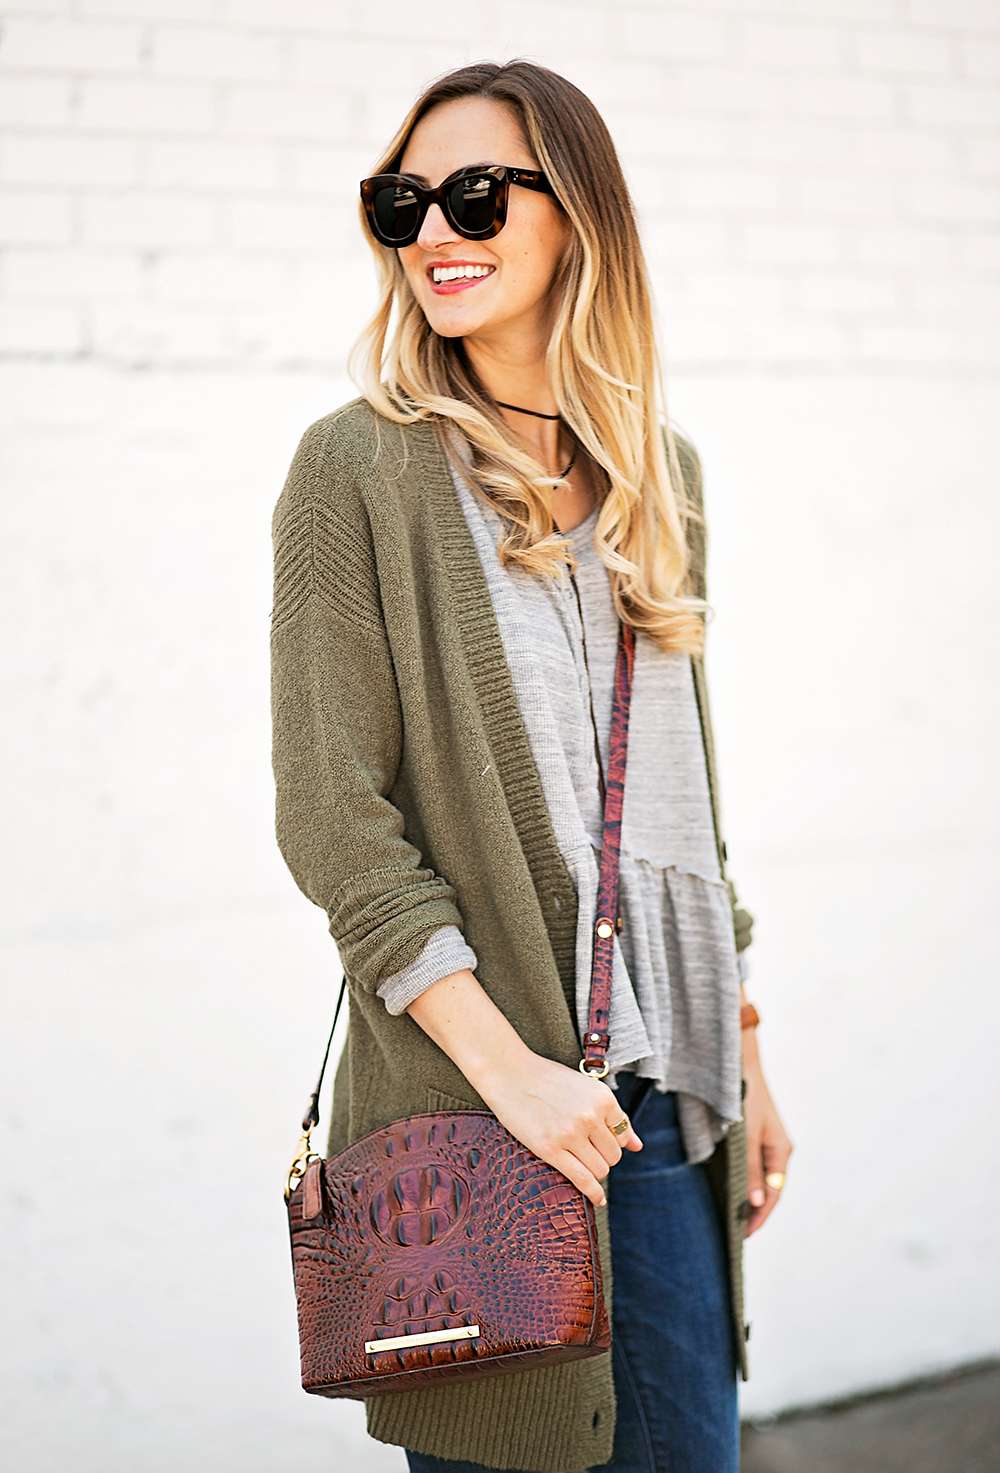 livvyland-blog-olivia-watson-peplum-thermal-tee-shirt-olive-cardigan-boho-outfit-casual-taupe-ankle-booties-fall-outfit-idea-celine-baby-marta-sunglasses-6